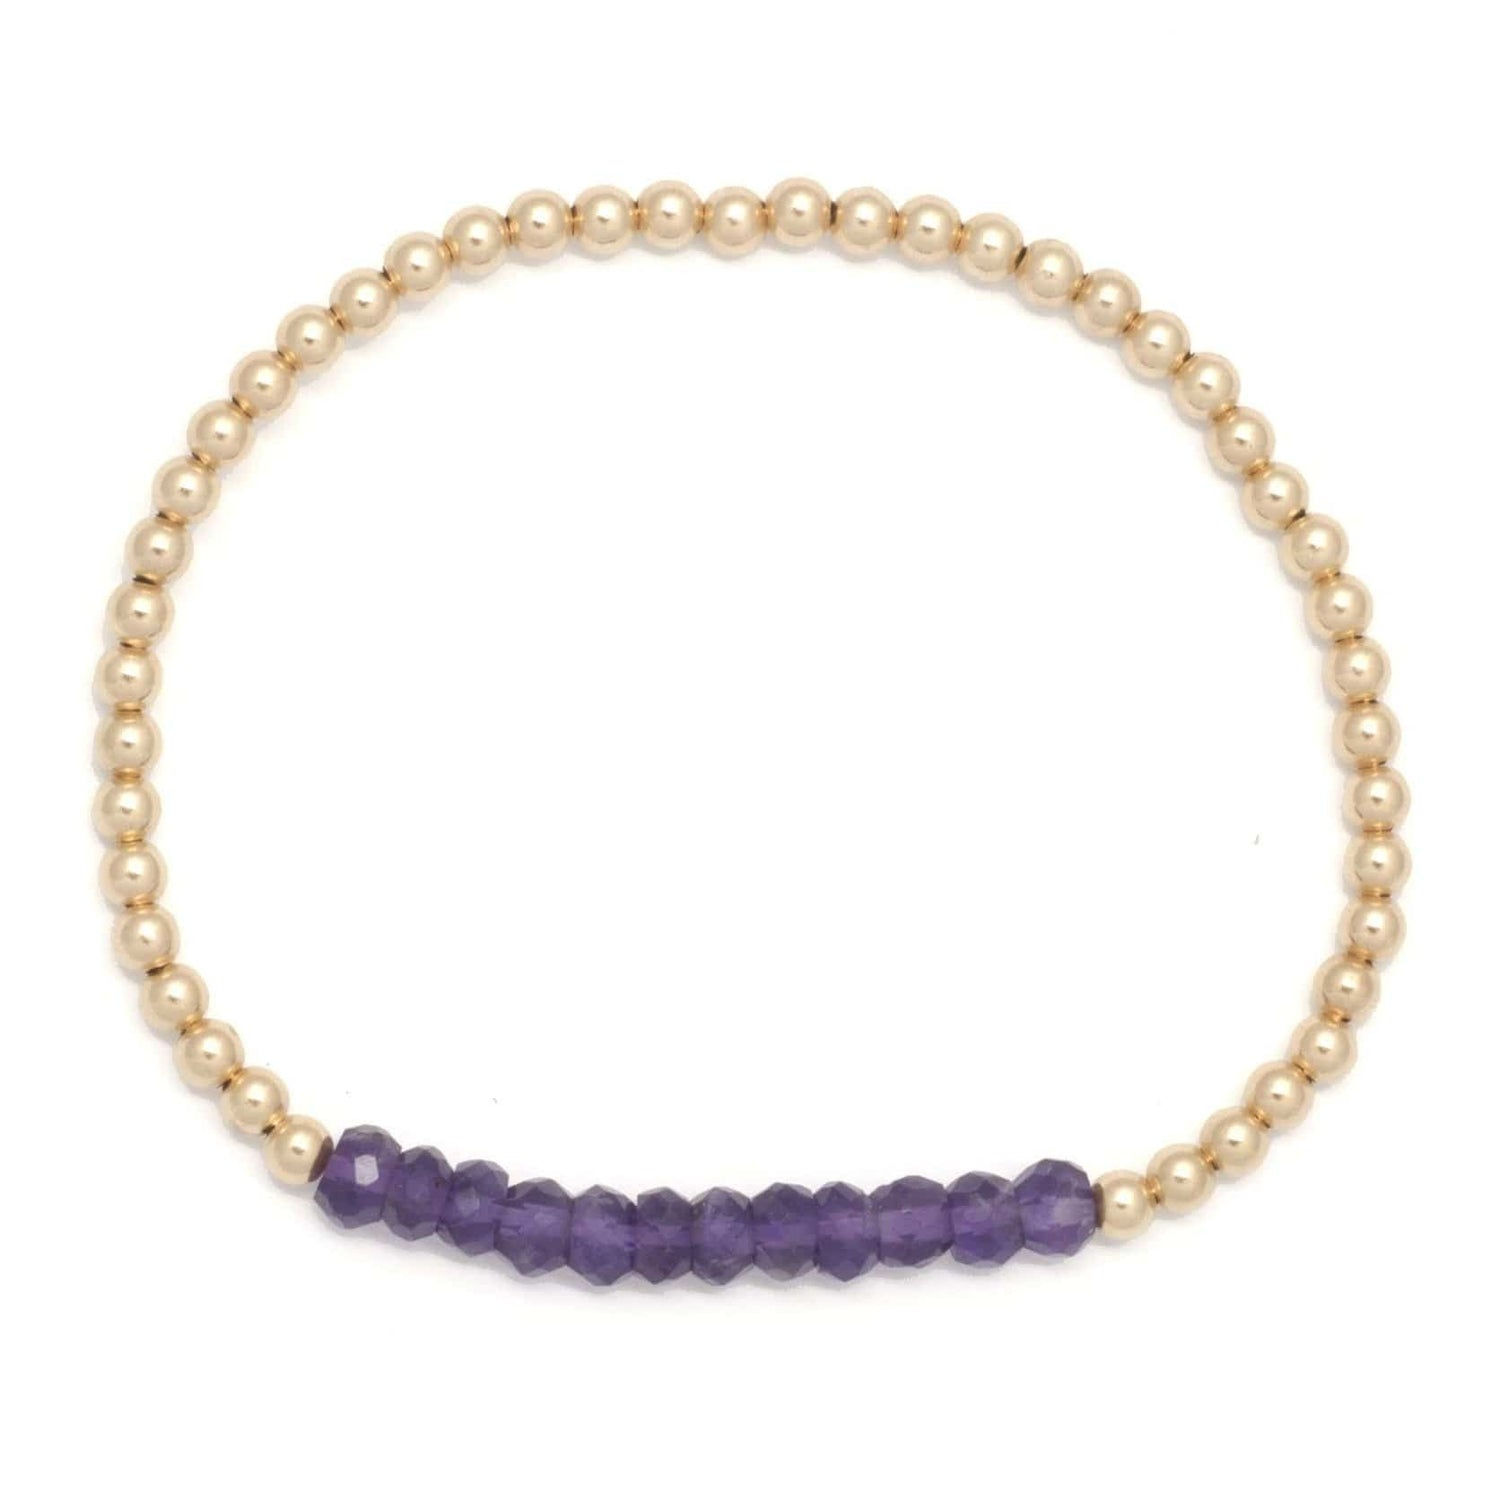 Karen Lazar 3mm Amethyst Gold Bead Layering Bracelet - Curated Los Angeles